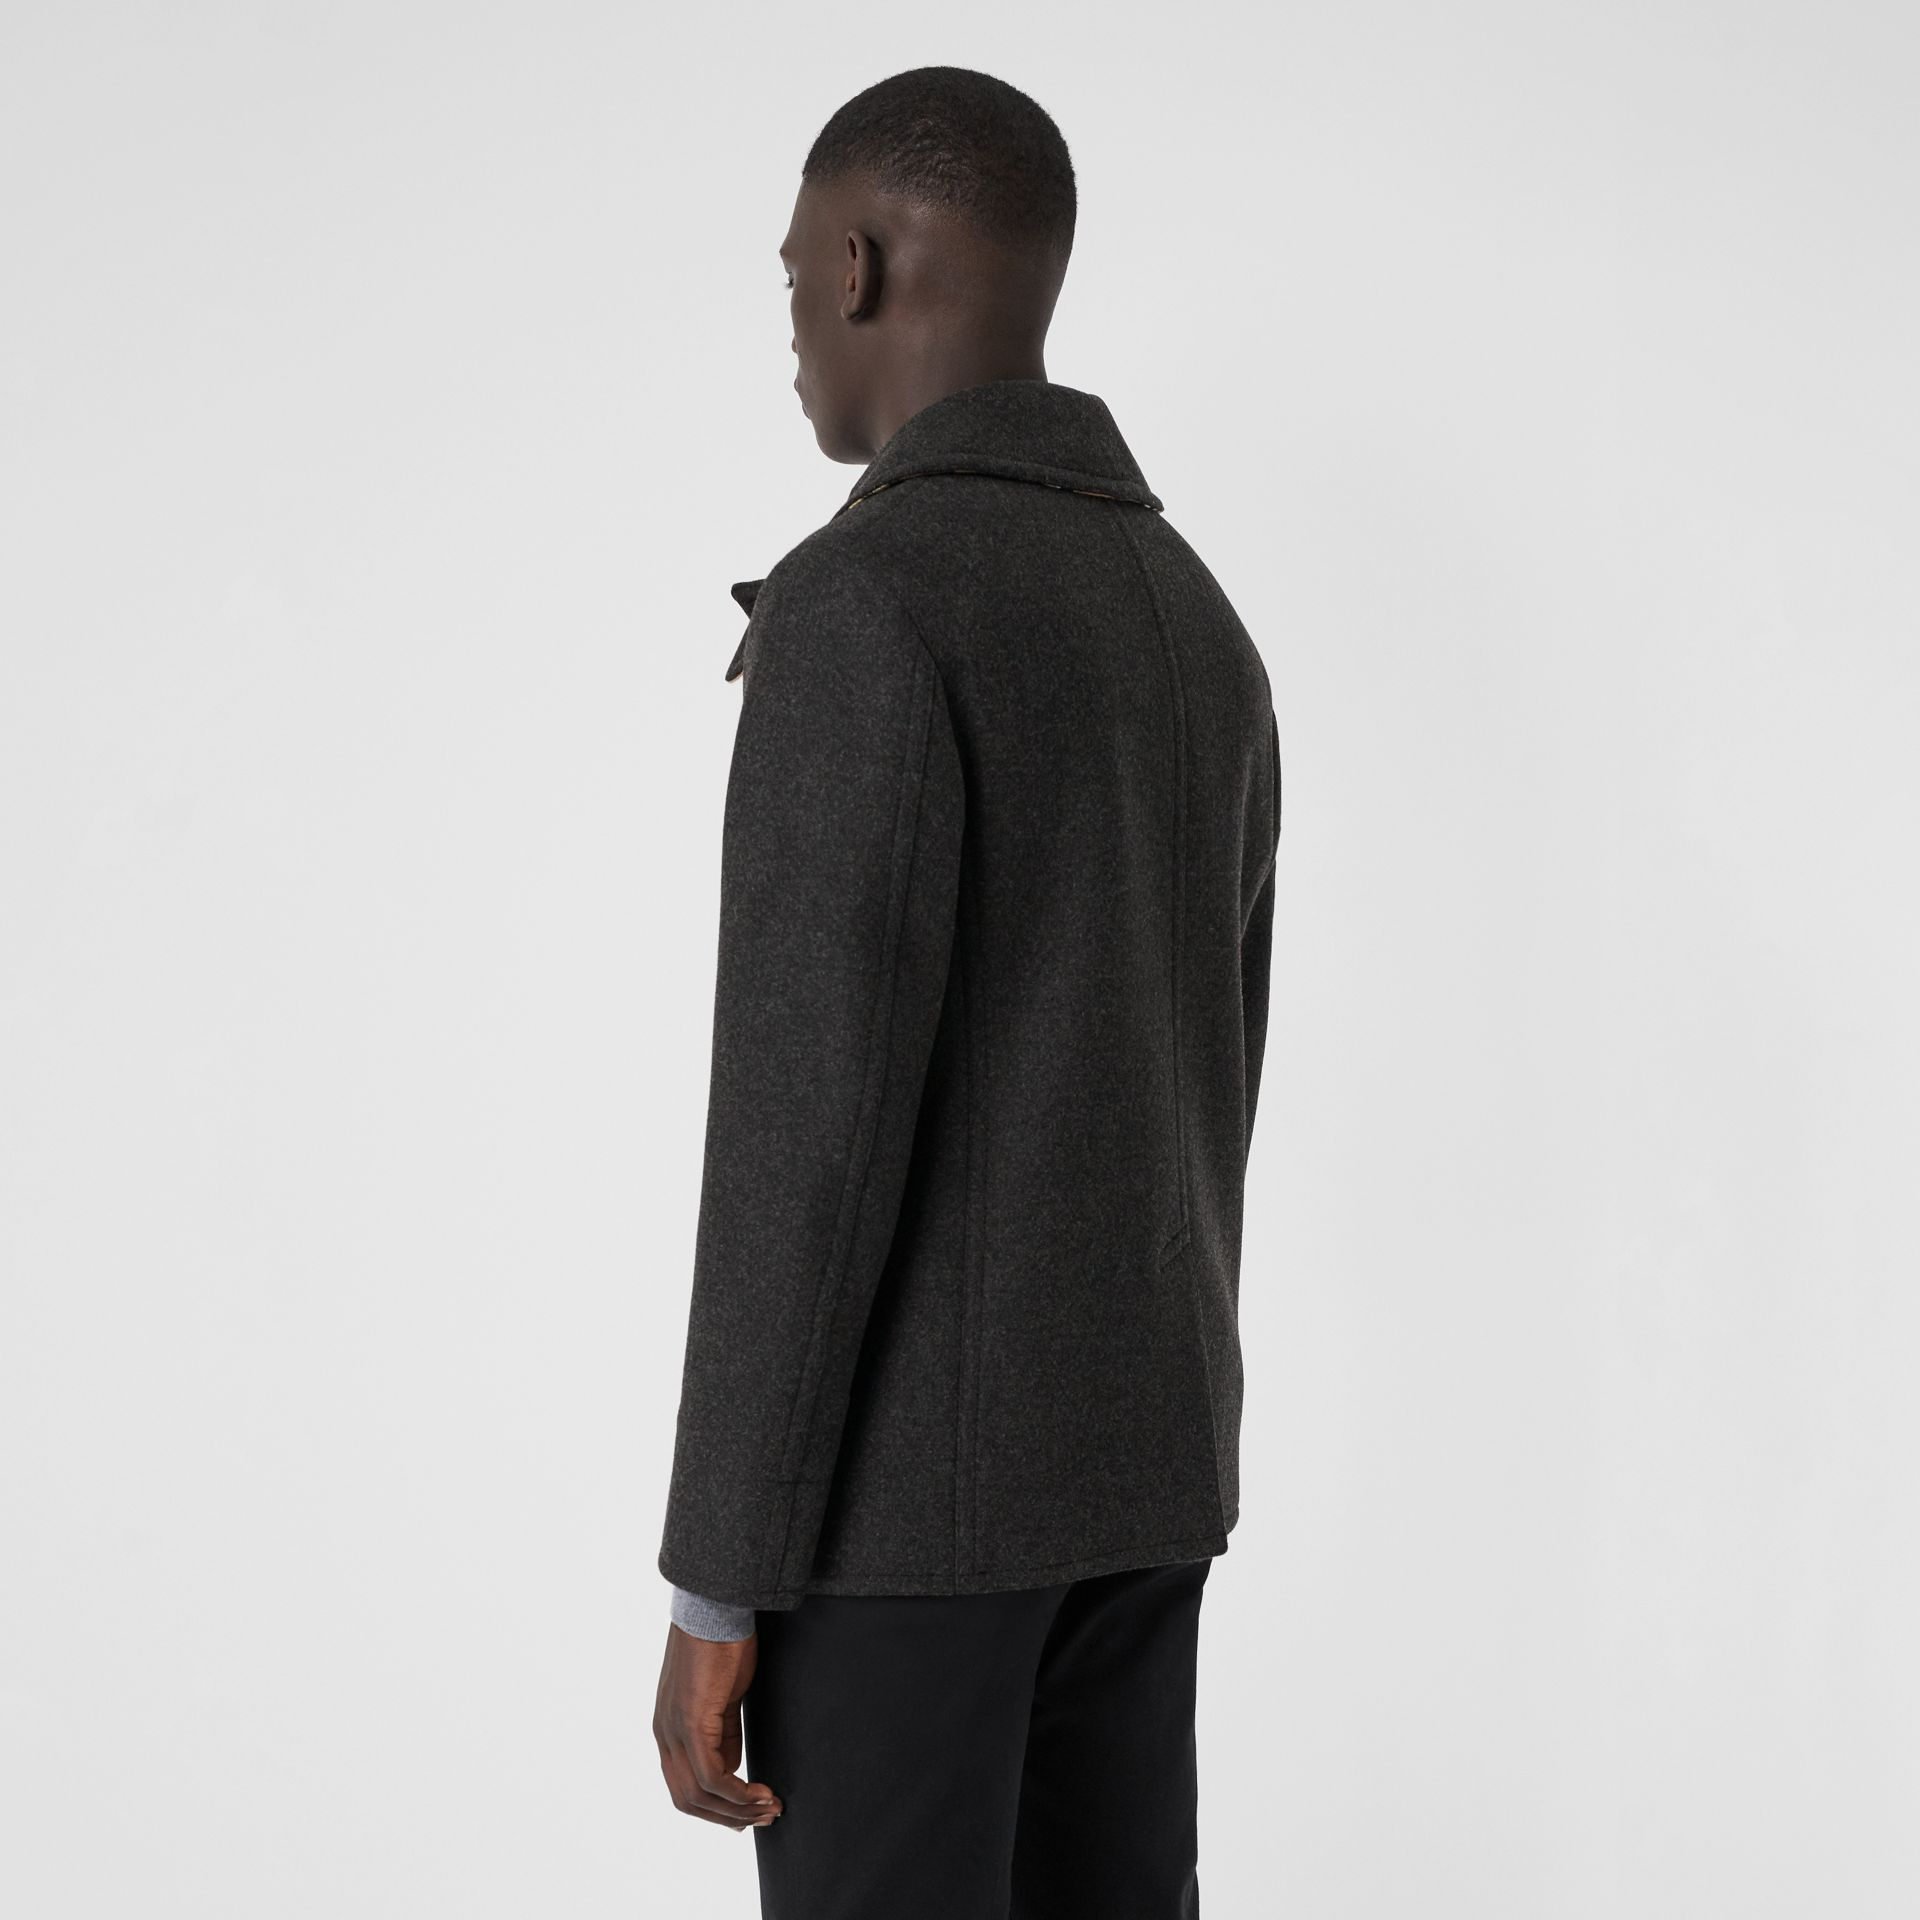 Wool Blend Pea Coat in Dark Charcoal Melange - Men | Burberry Australia - gallery image 2